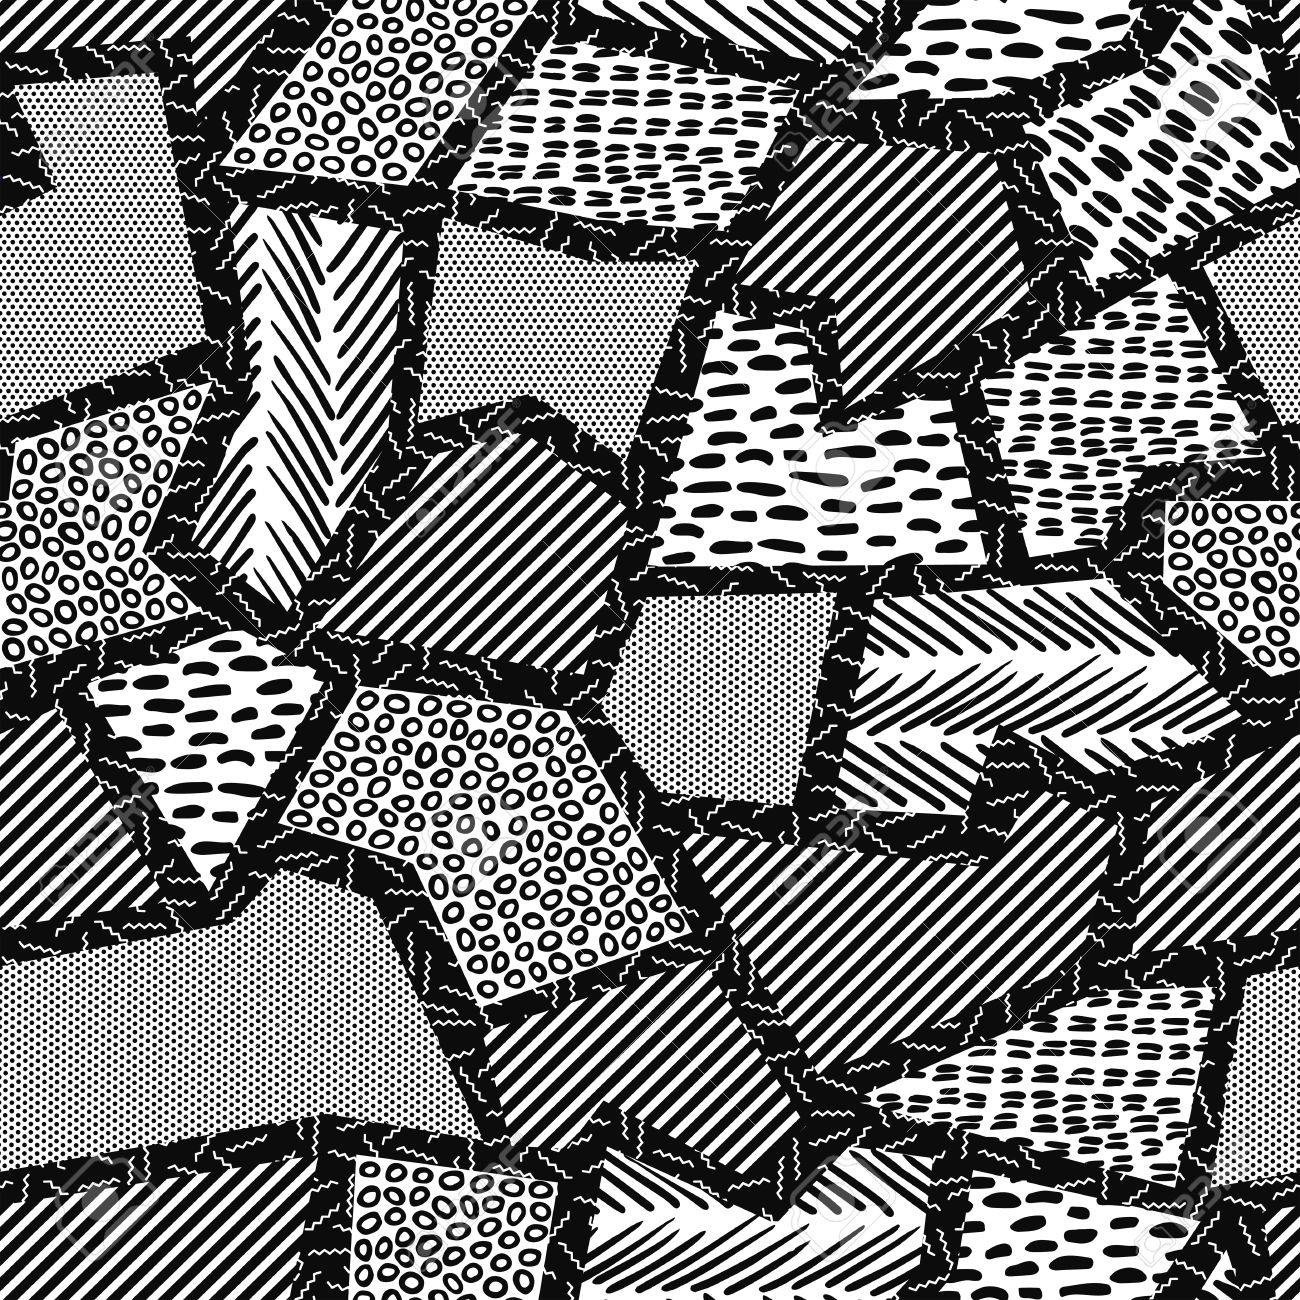 Vector vintage seamless pattern in black and white with retro geometric shape collage 80s memphis fashion style ideal for web background